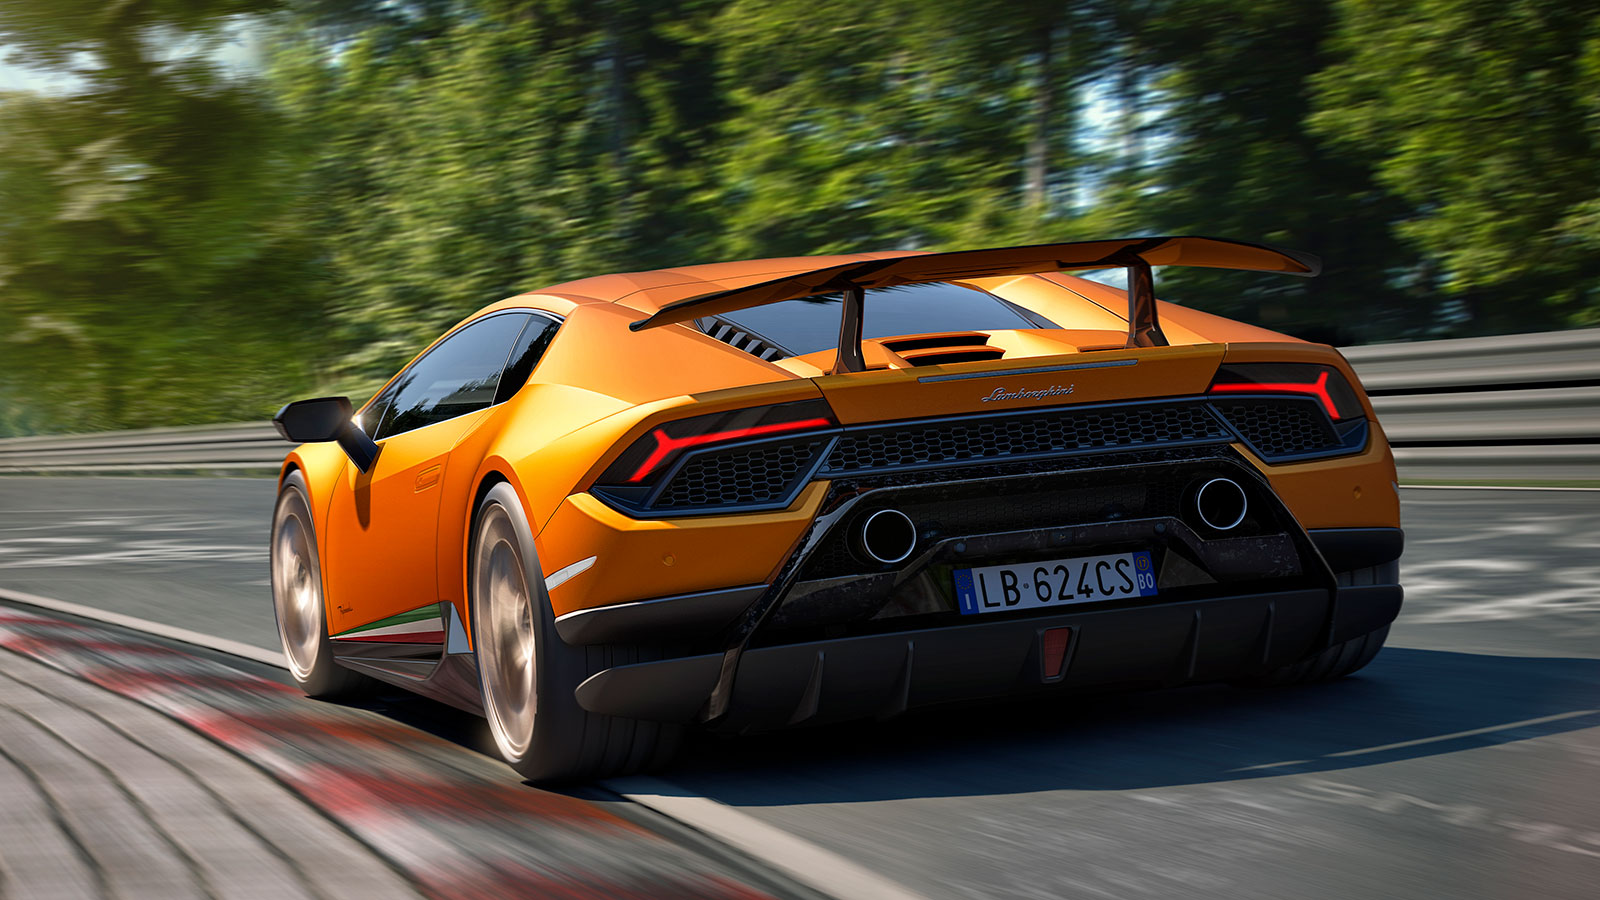 Lamborghini Huracan Performante - Raging Technology image 7